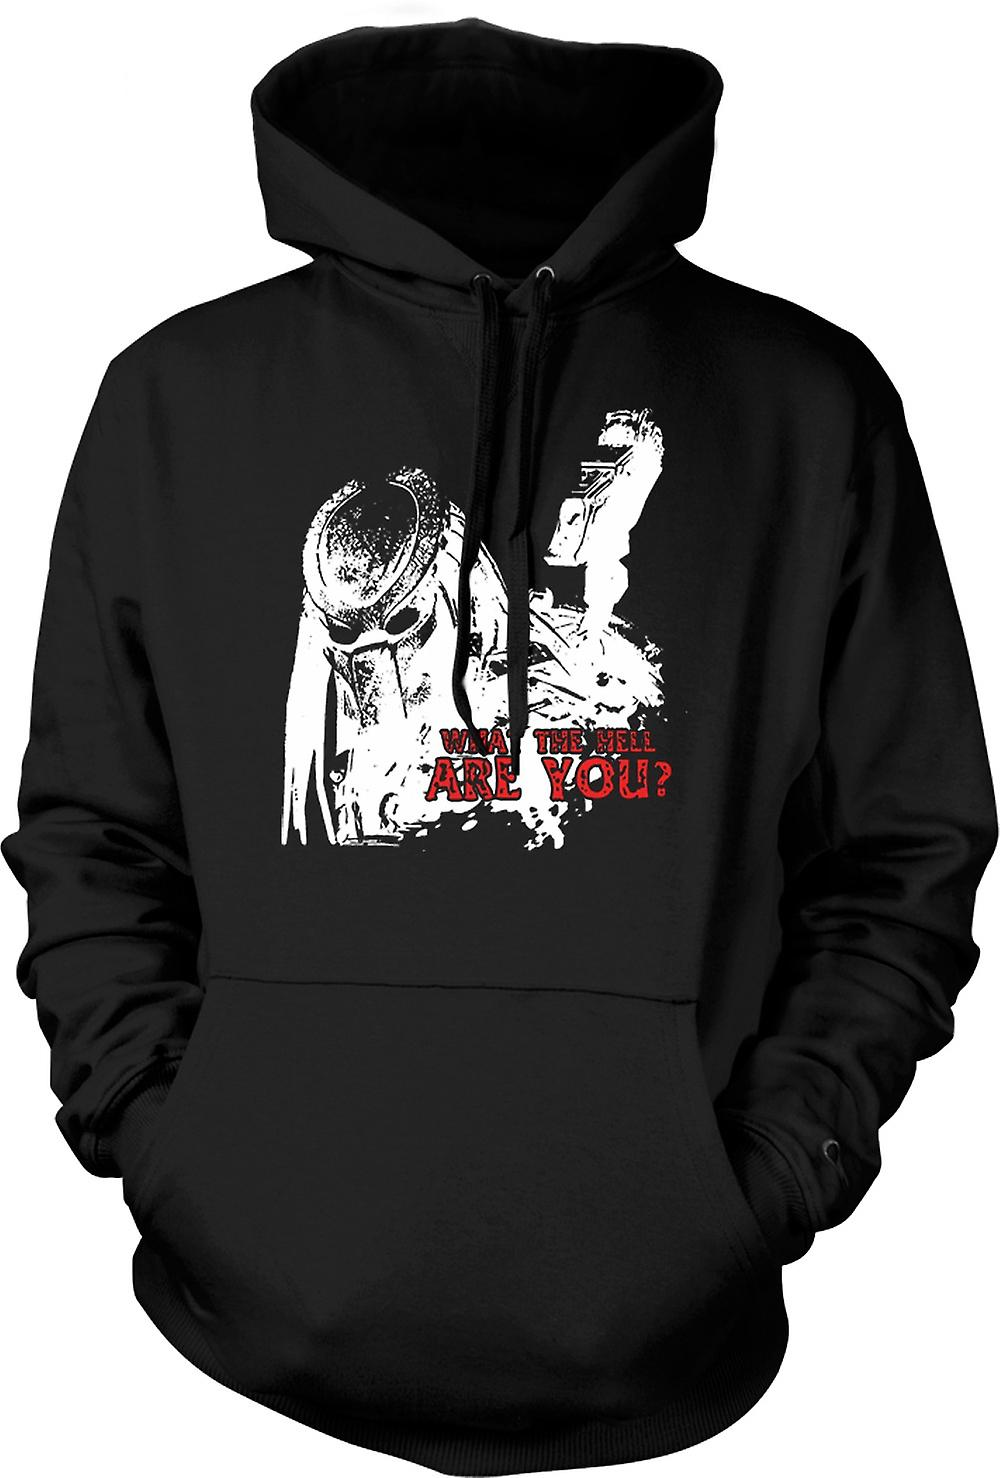 Kids Hoodie - Predator What The Hell - Alien